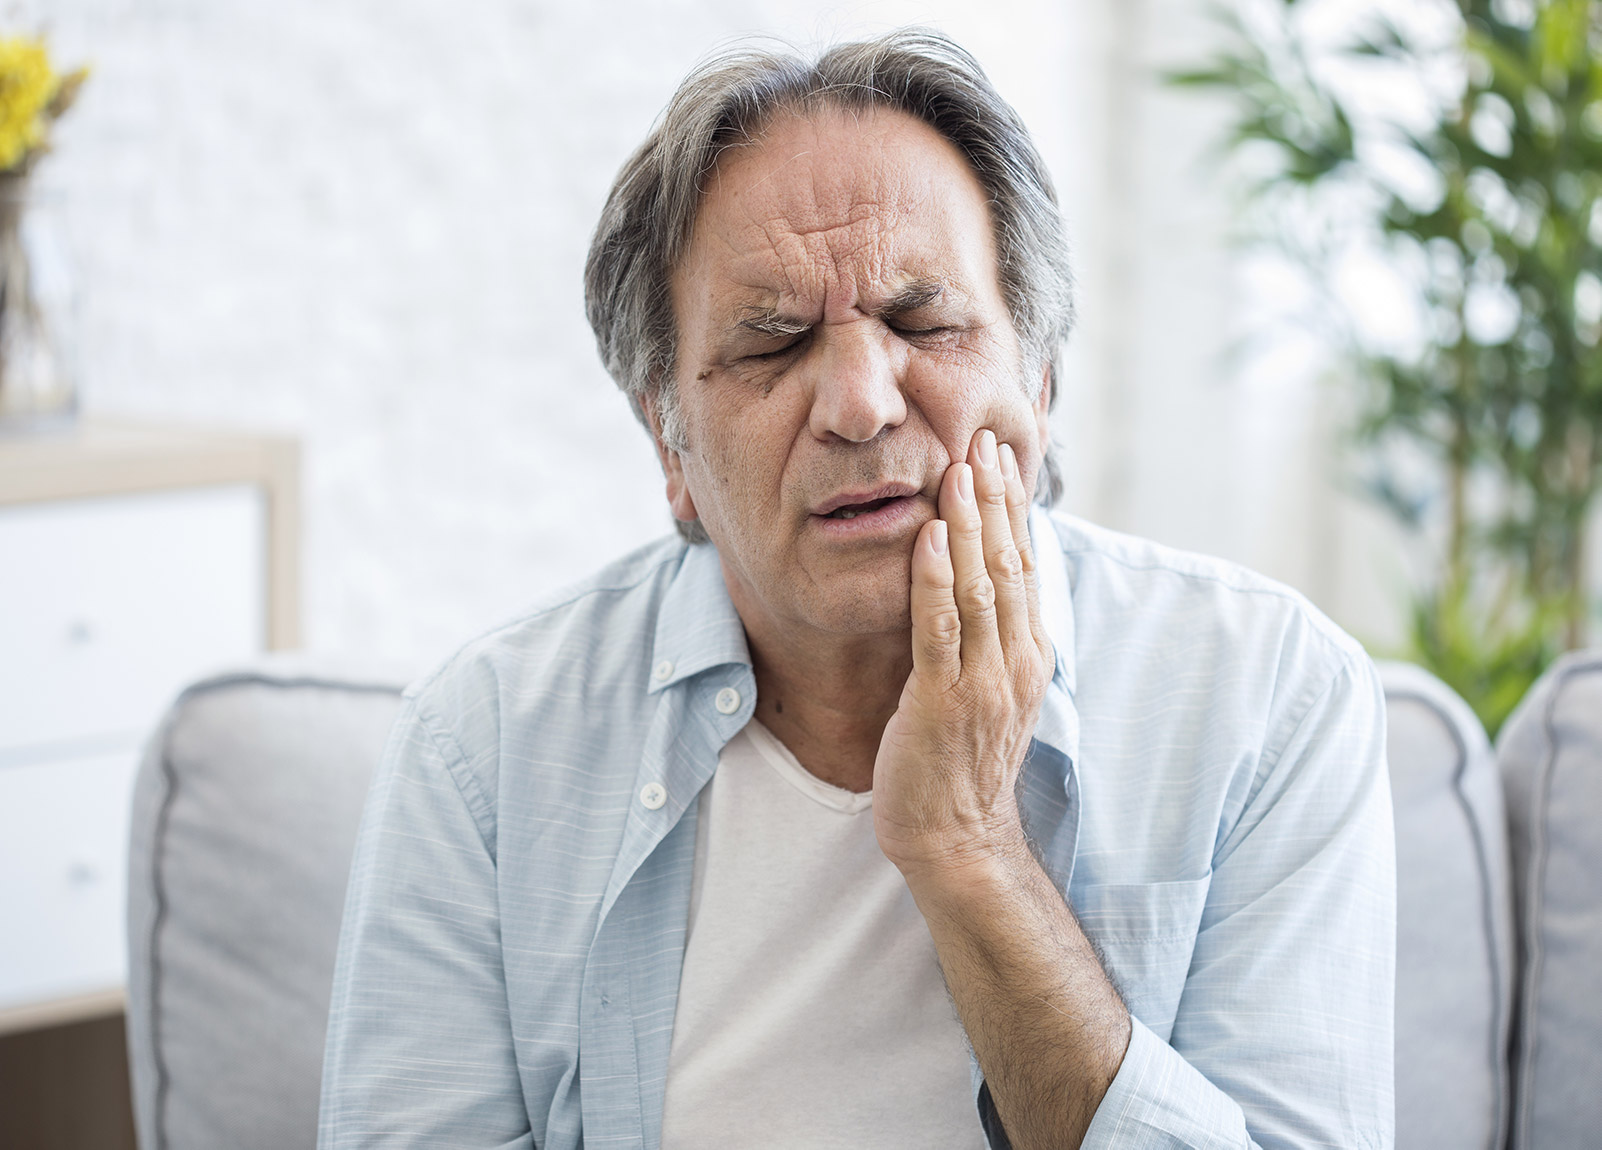 Man with painful tooth ache